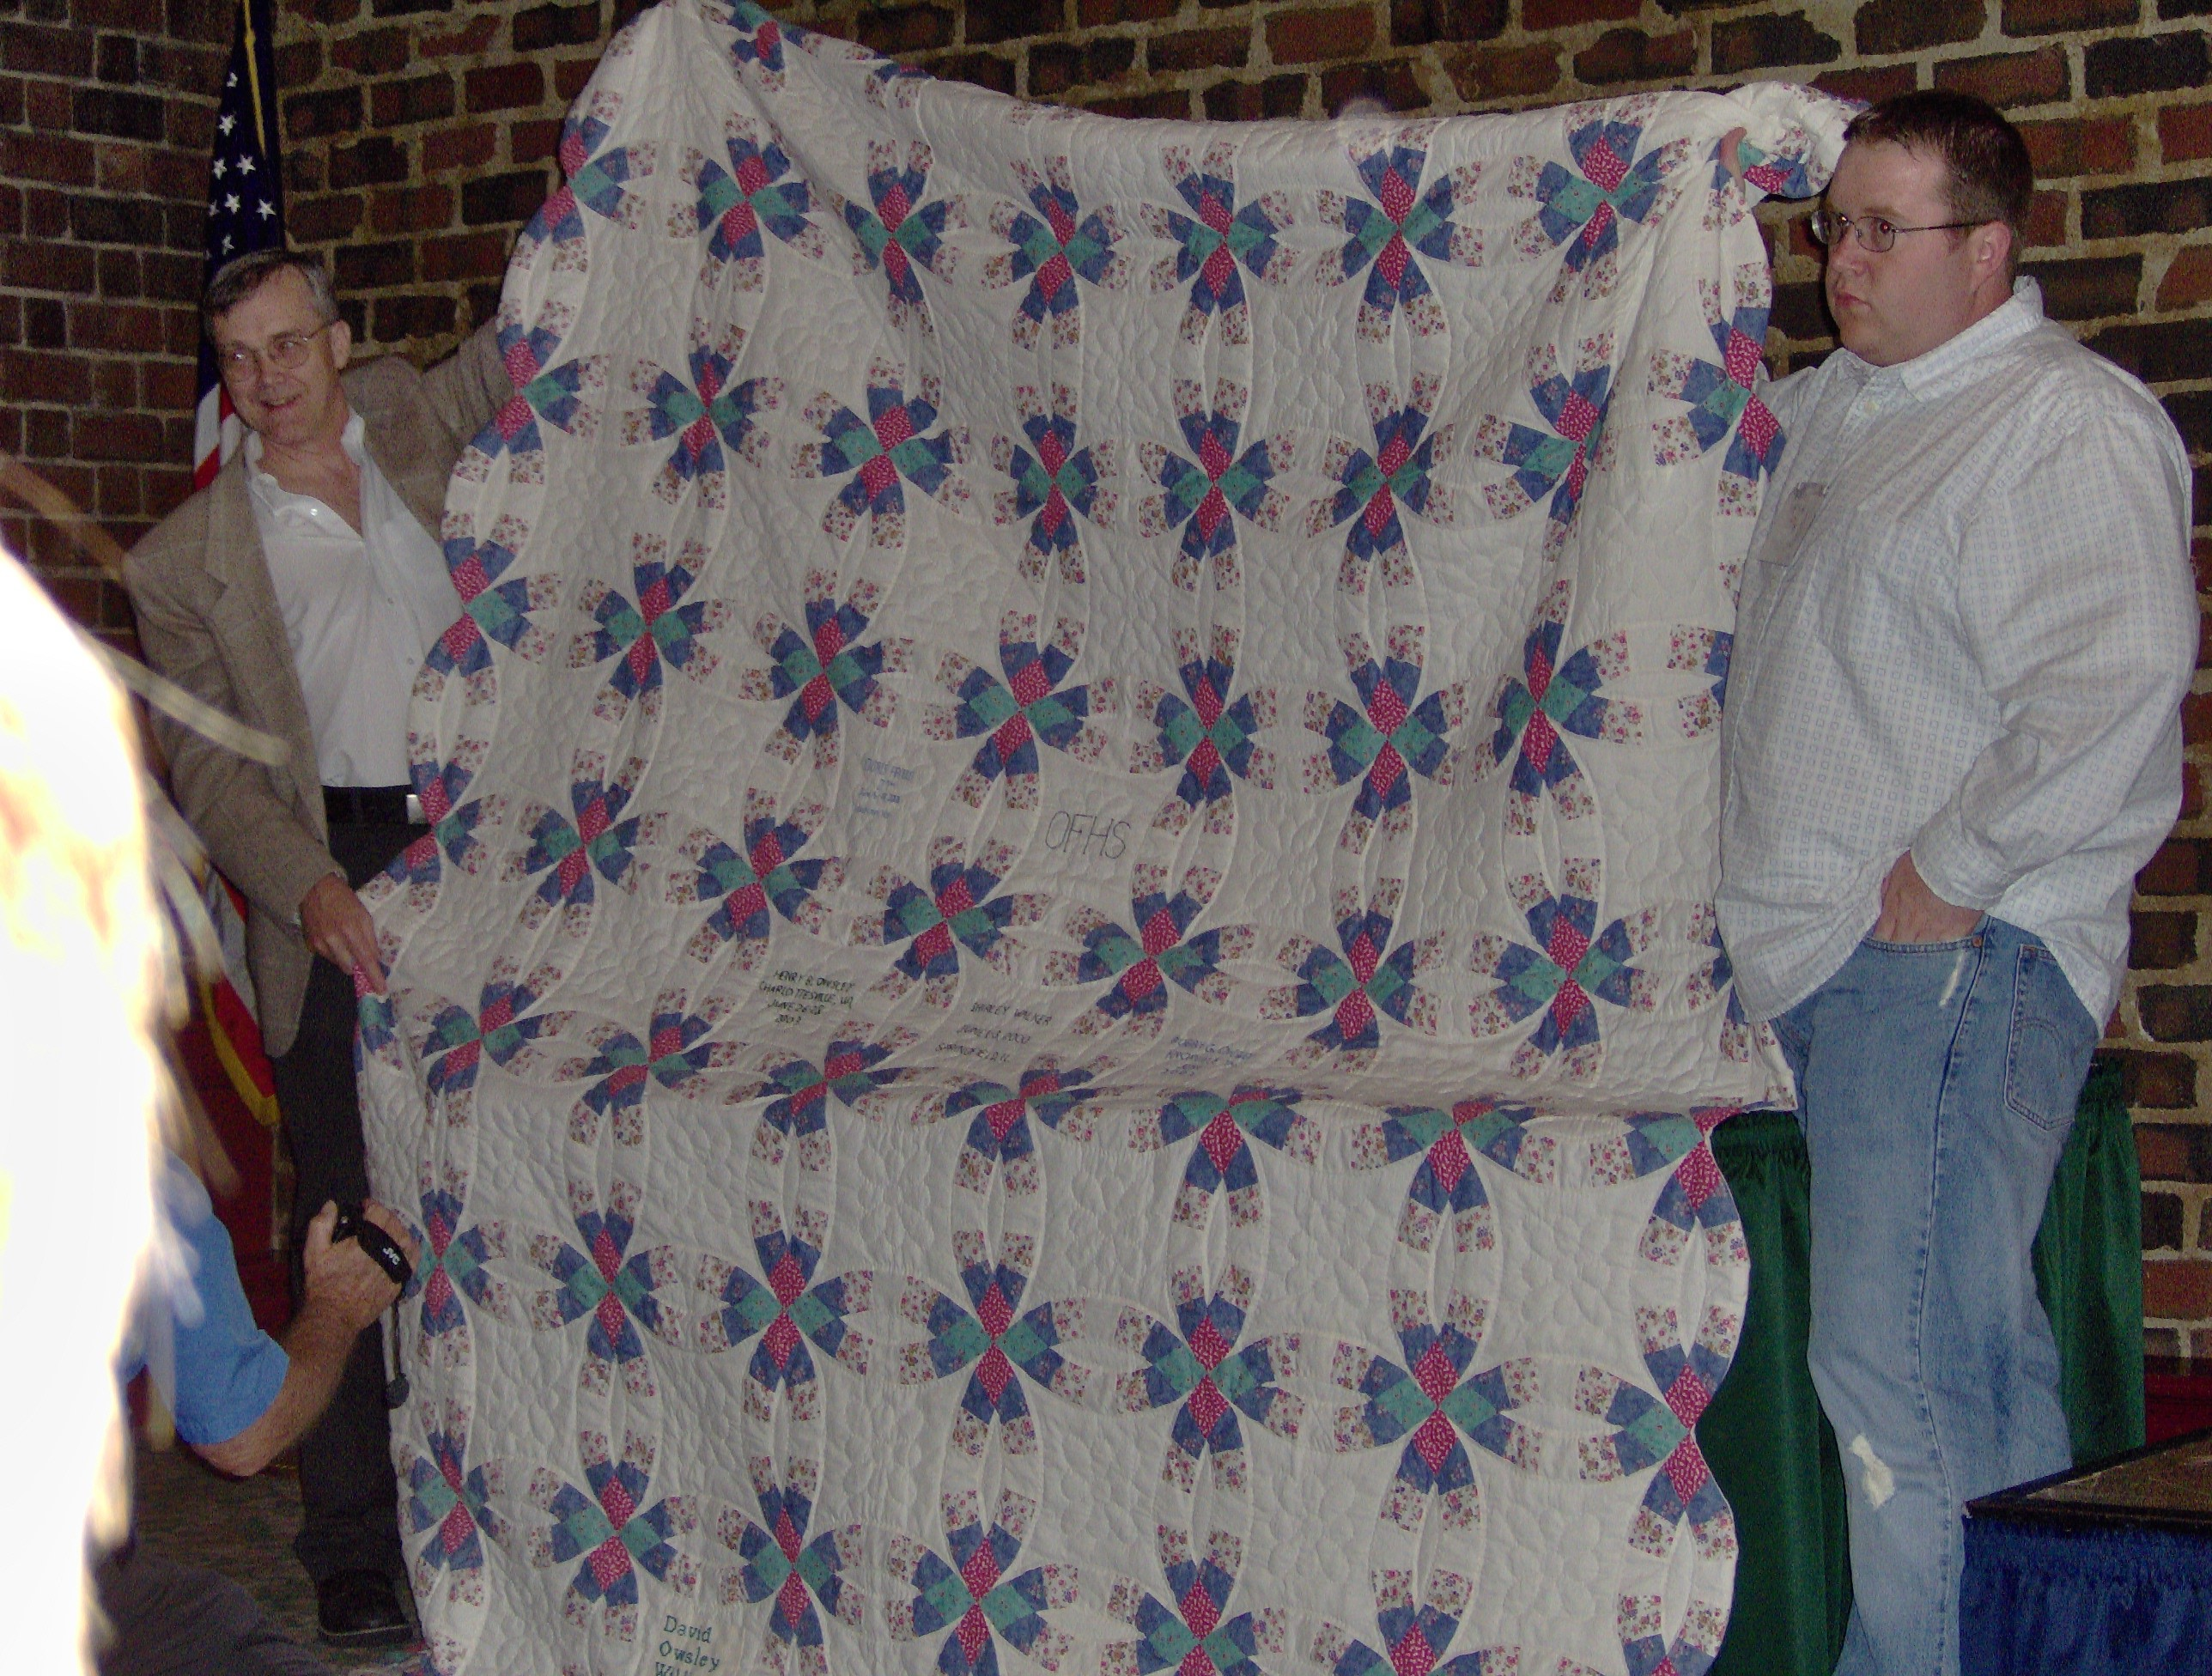 Gary Toms and Joseph Owsley showing the Owsley Quilt (2006 OFHS Meeting in Chattanooga